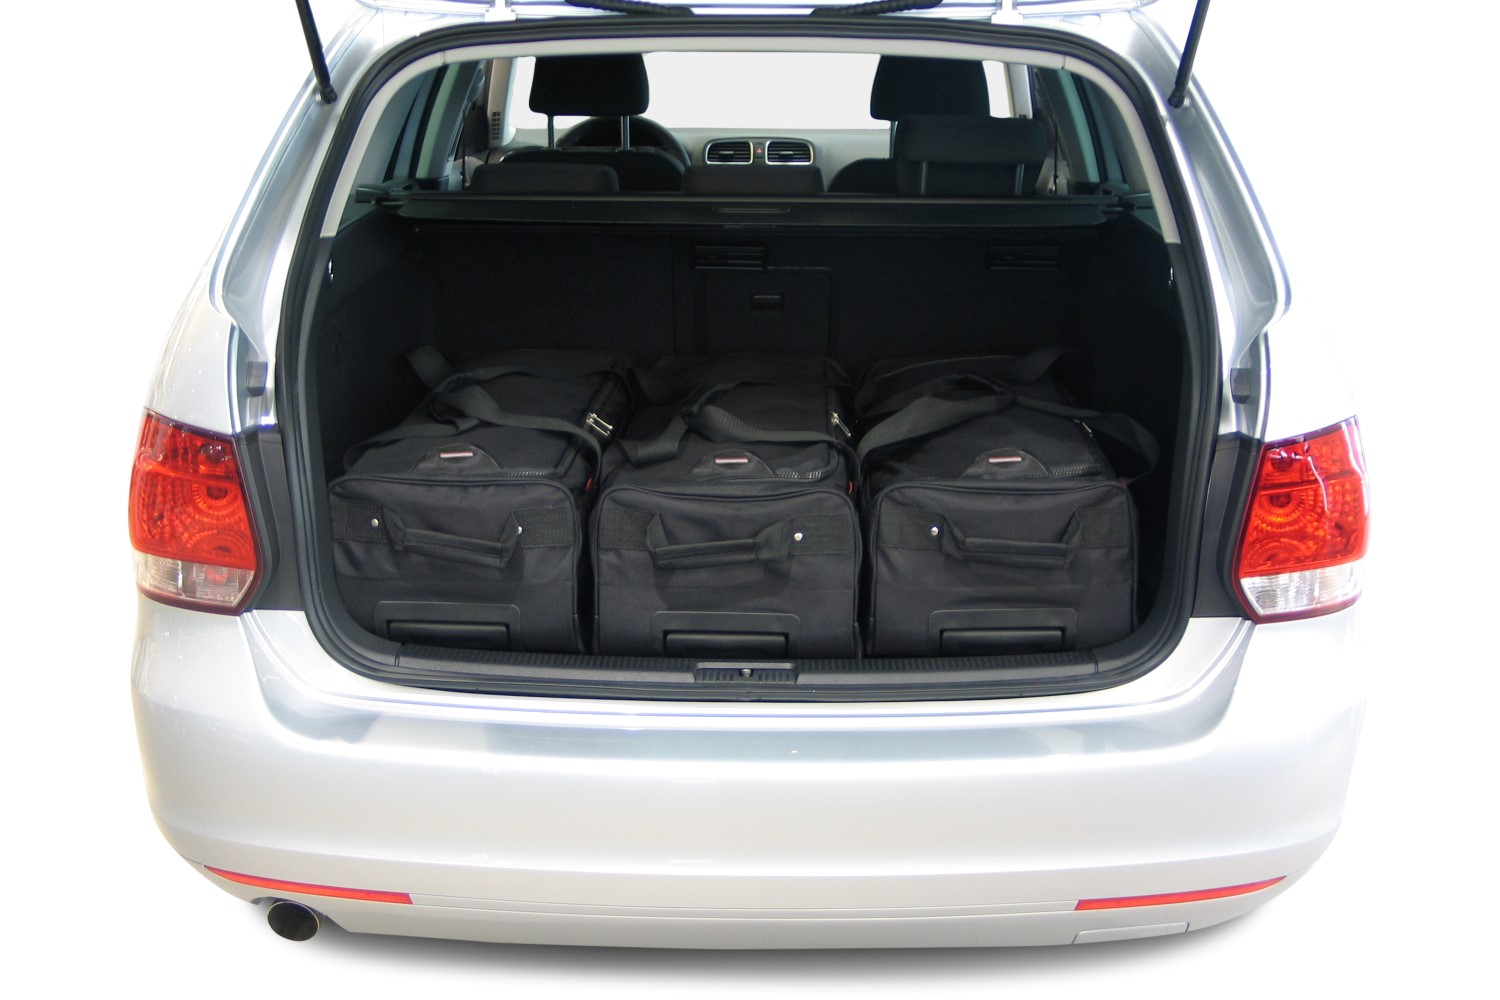 golf volkswagen golf v 1k vi 5k variant 2007 2013 car bags travel bags. Black Bedroom Furniture Sets. Home Design Ideas